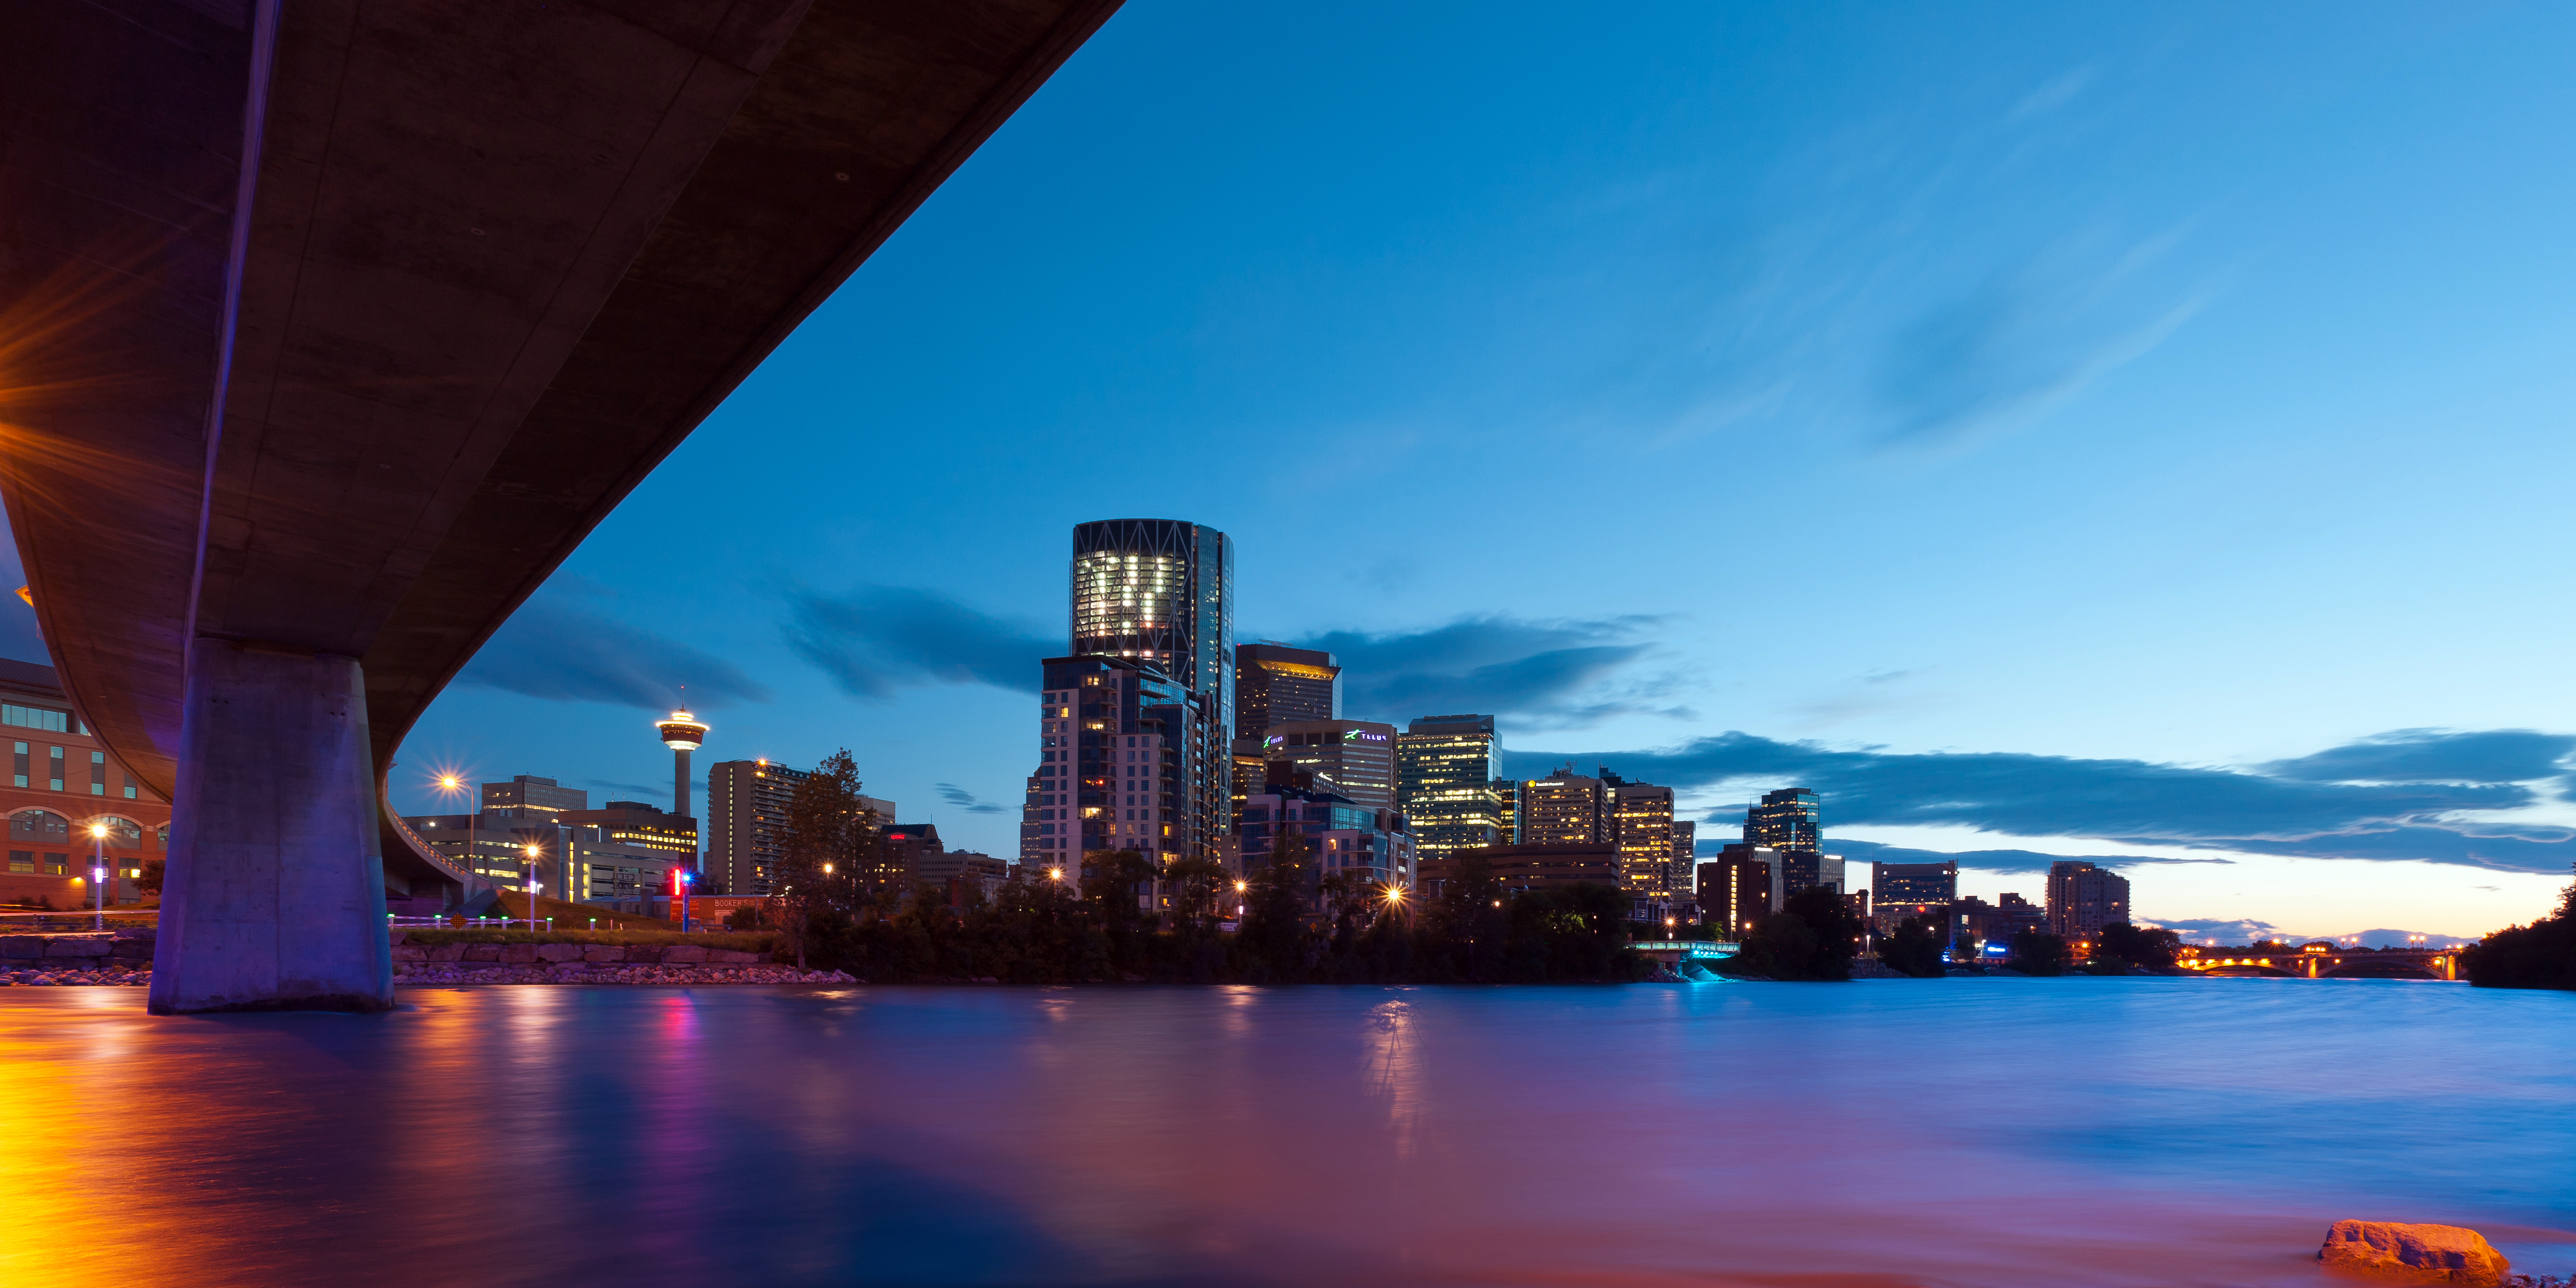 5 Reasons to Choose Calgary for your next AI/Tech/Energy Event